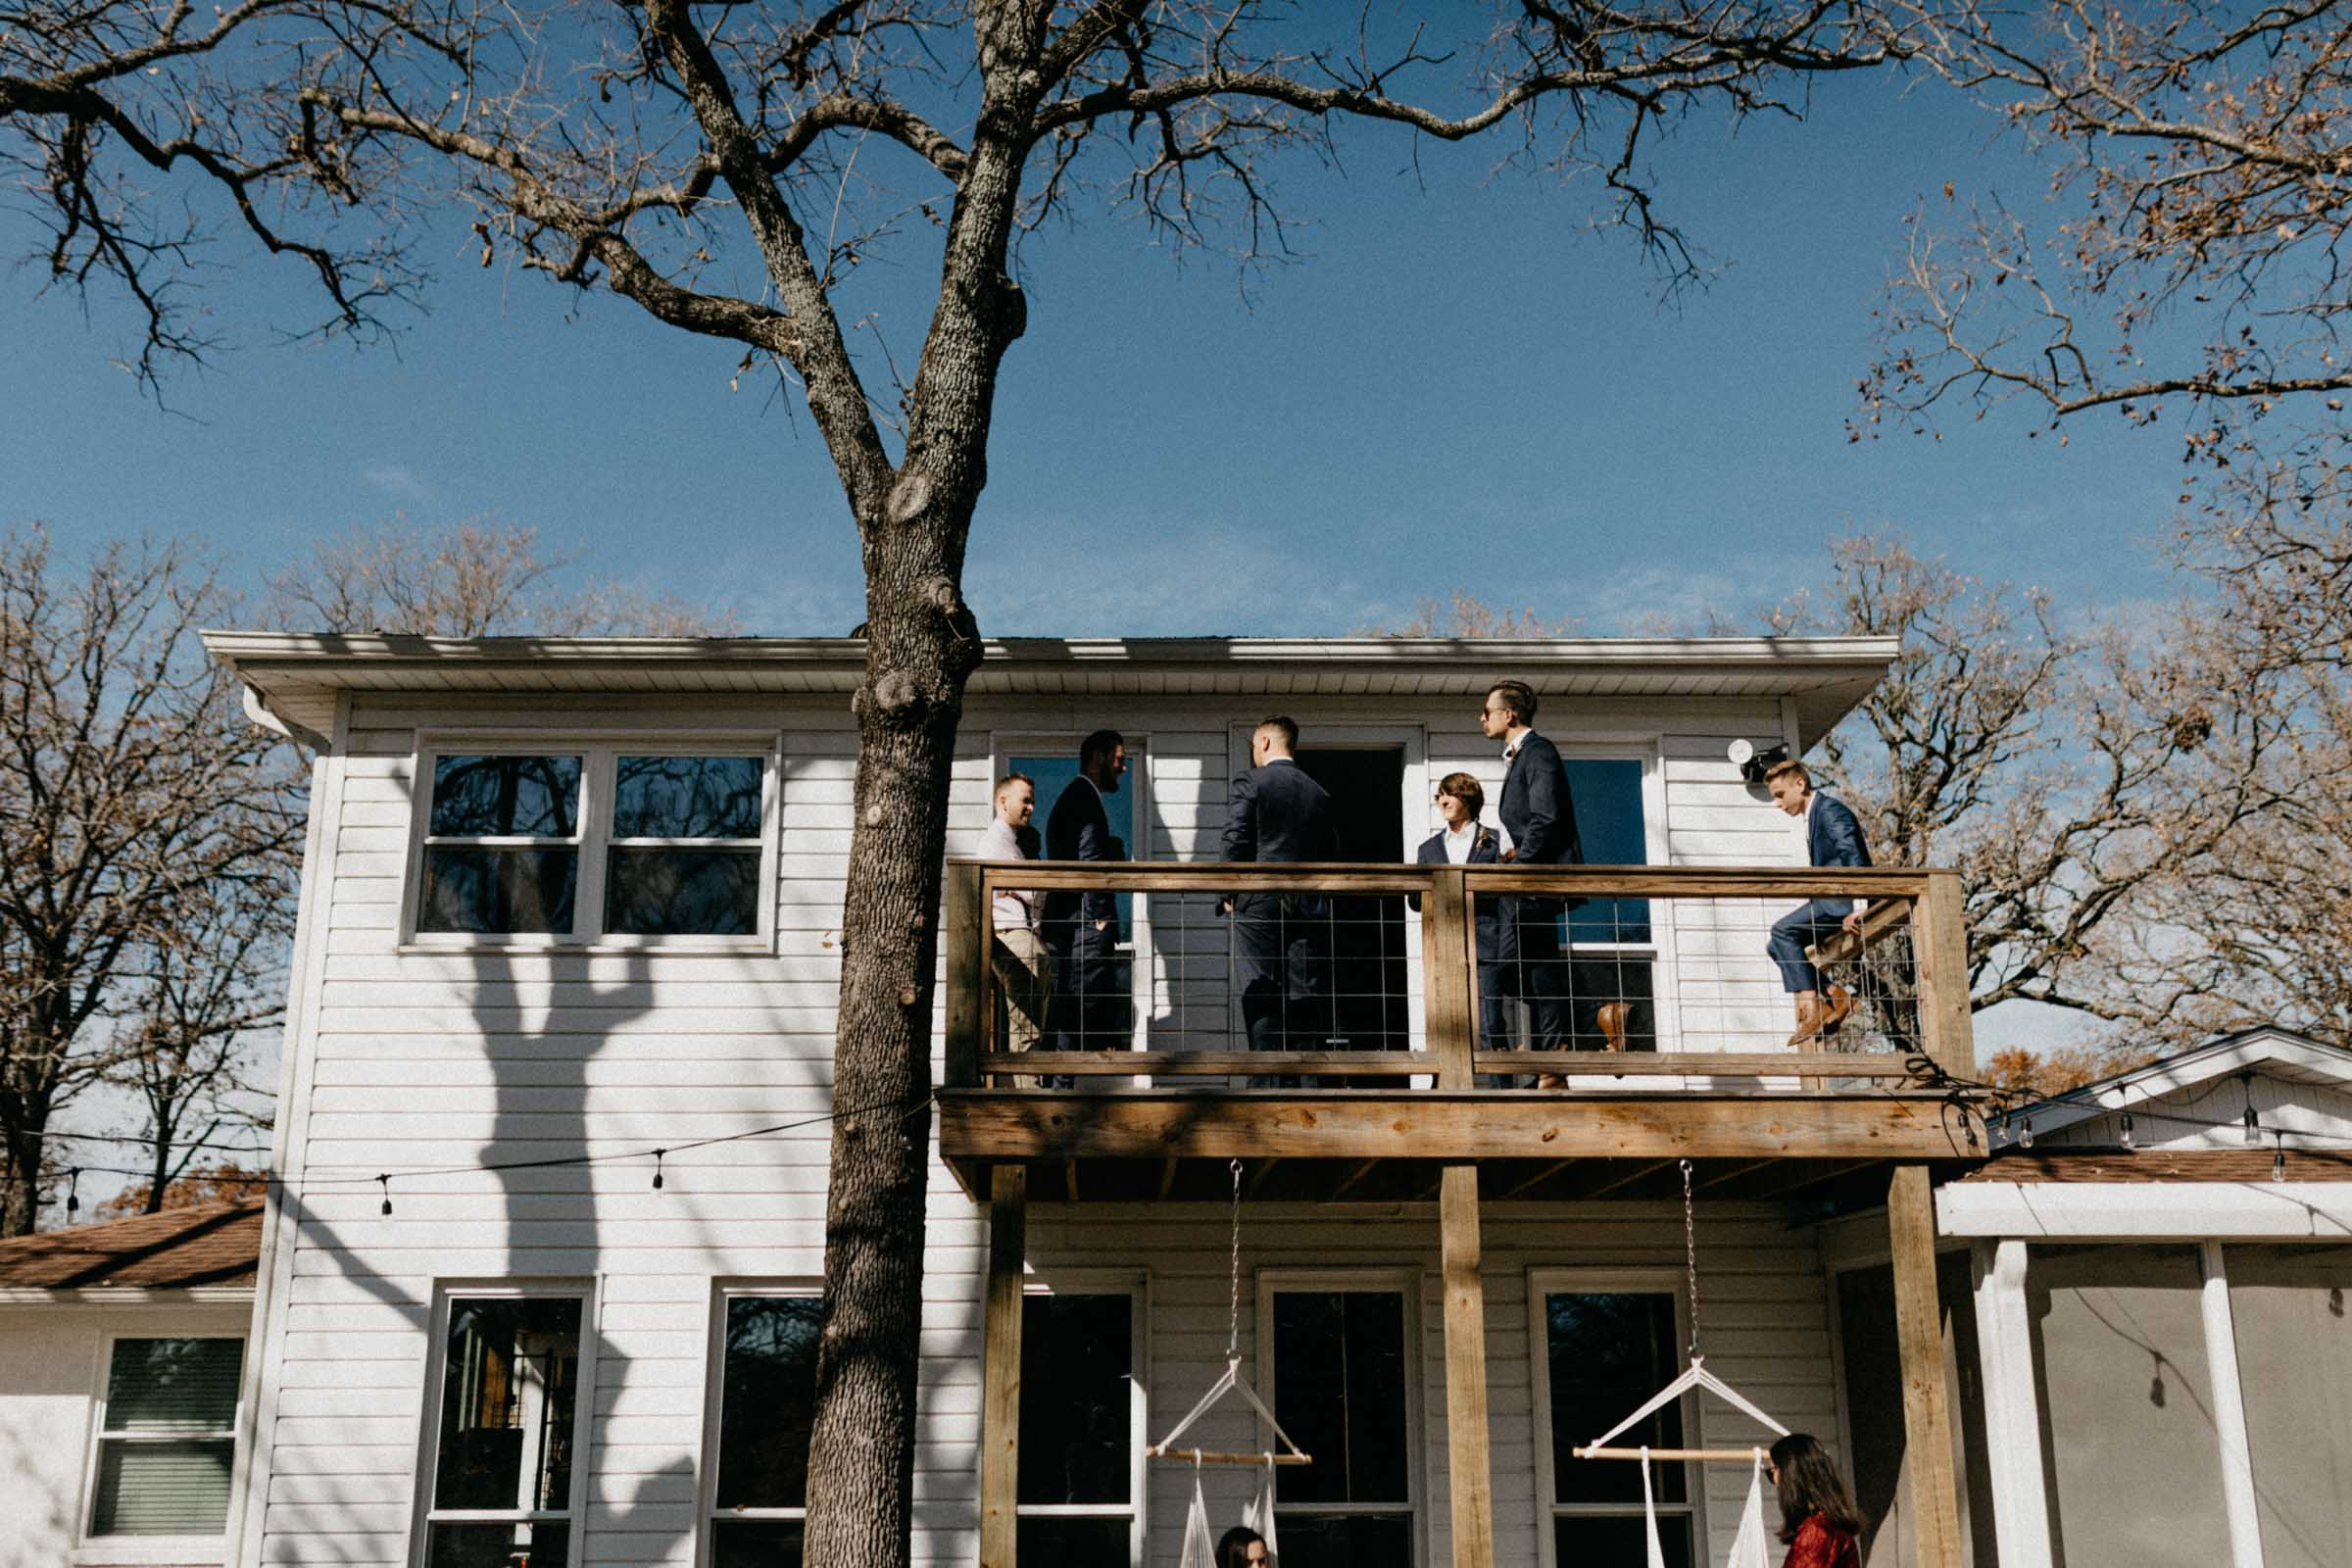 groomsmen hanging out on a balcony before the wedding day begins